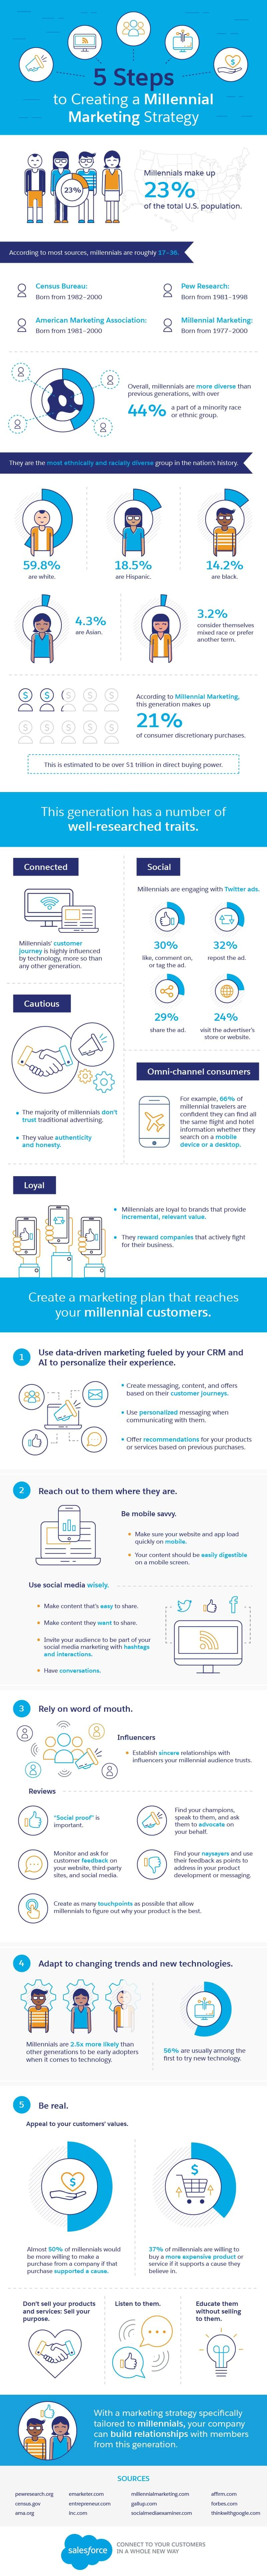 Millennials are a moving target, so it helps to understand as much as you can about their demographics. Salesforce did the homework for you.  https://www.salesforce.com/products/marketing-cloud/best-practices/millenial-marketing-strategy/#